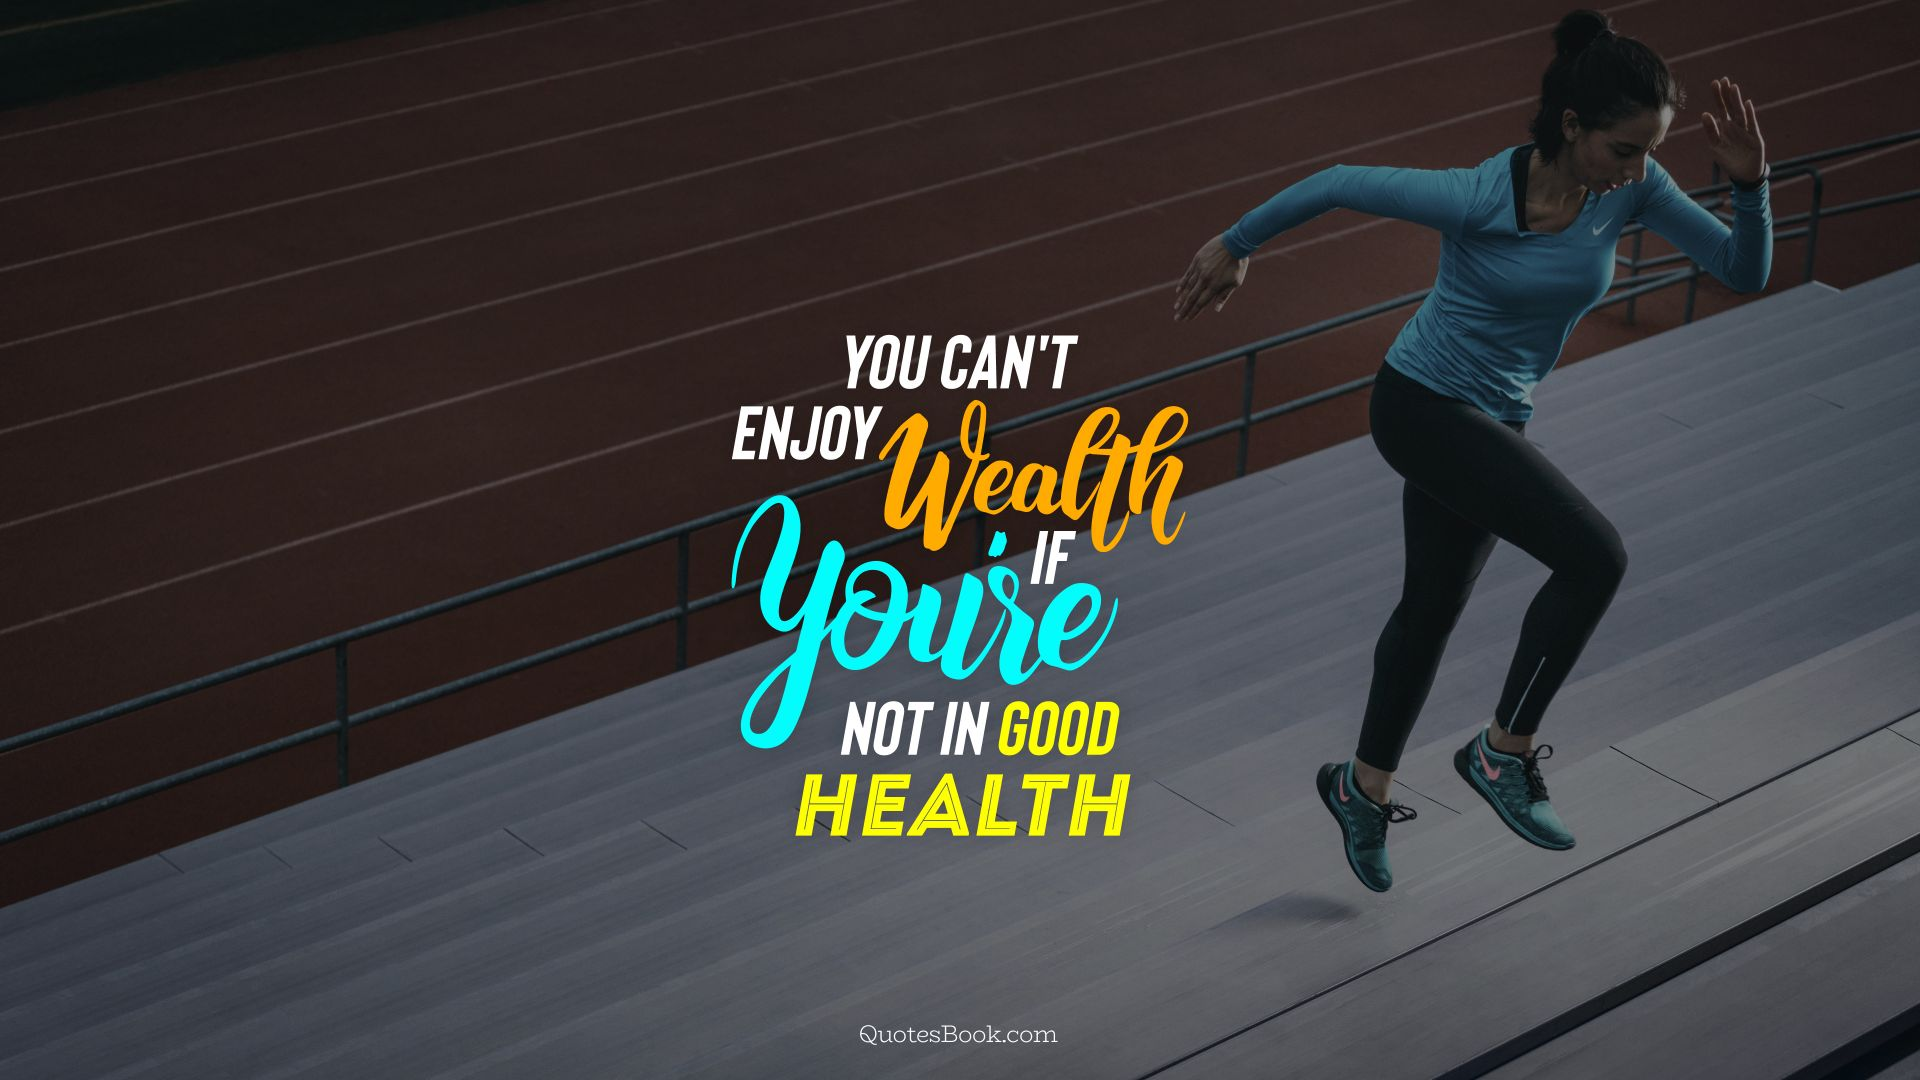 You can't enjoy wealth if you're not in good health